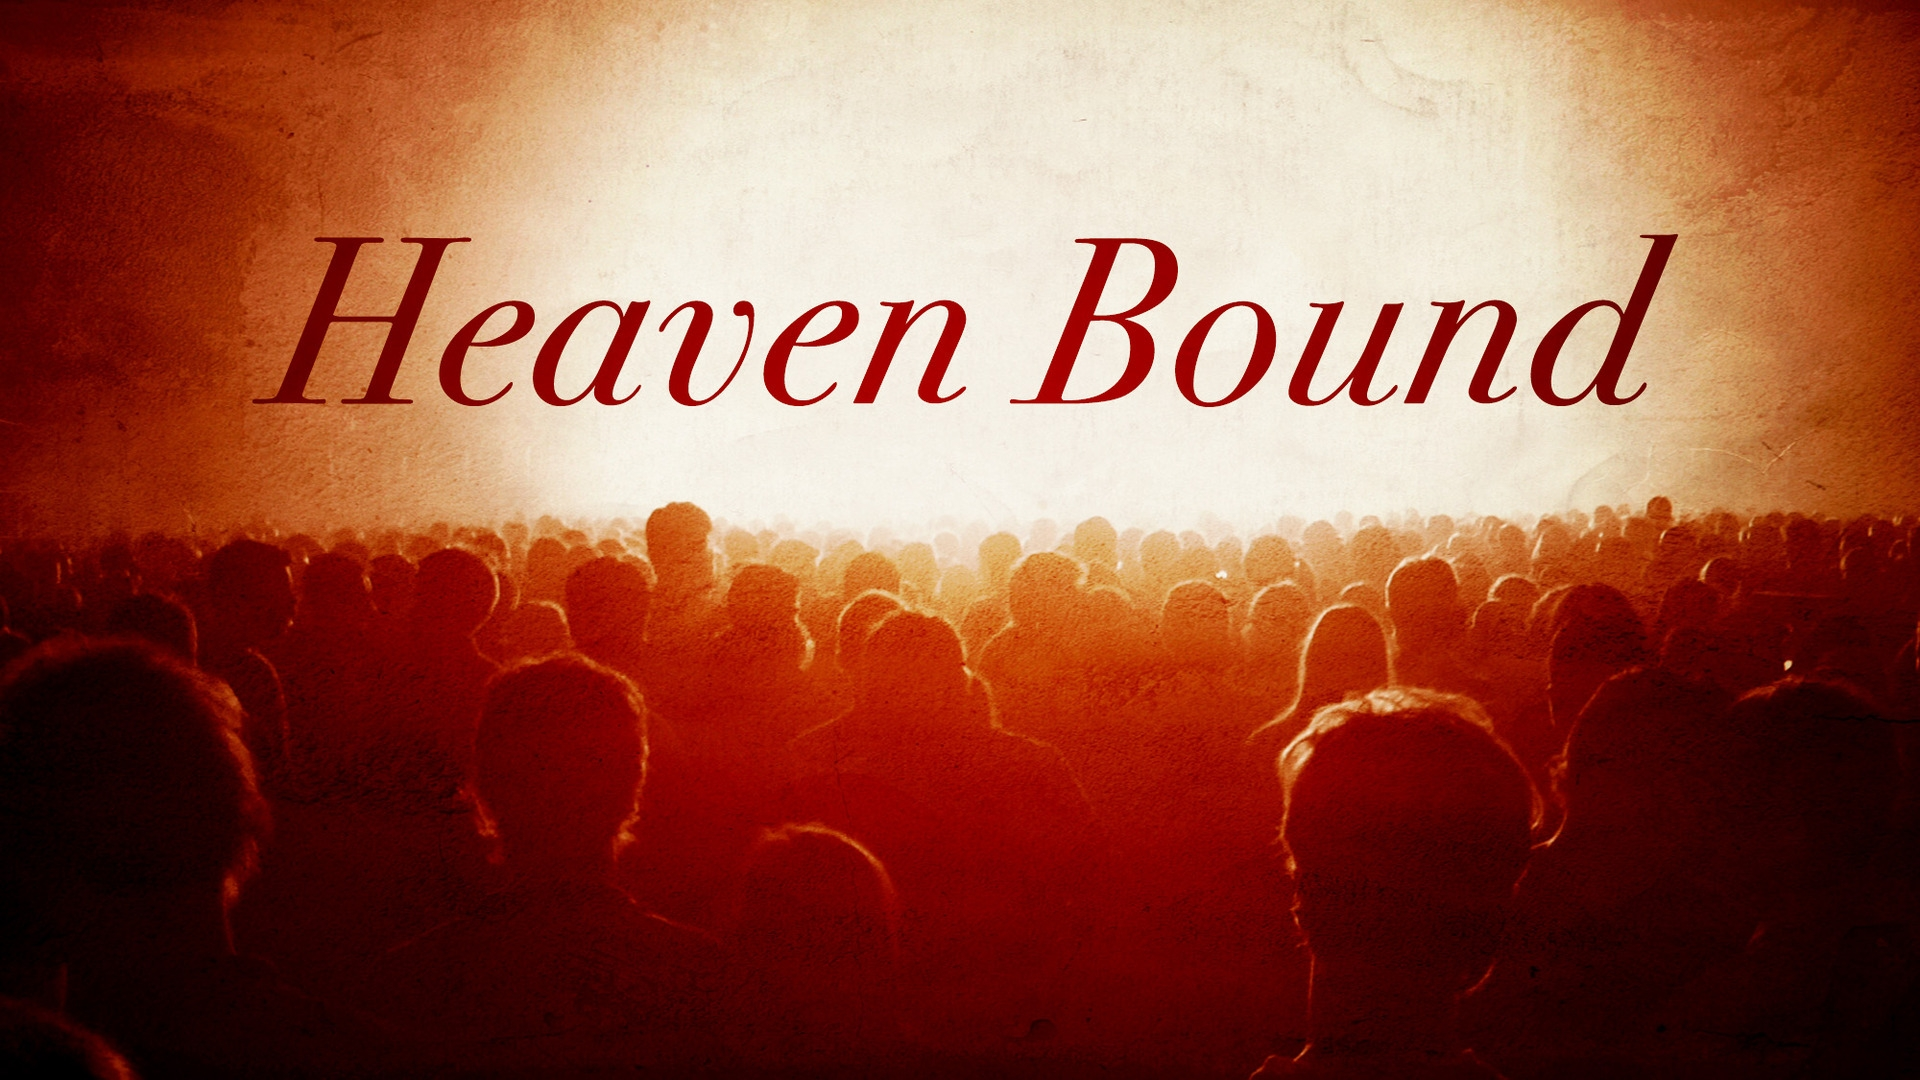 Sunday March 29, 2020 Heaven Bound - Pastor Anthony Cox